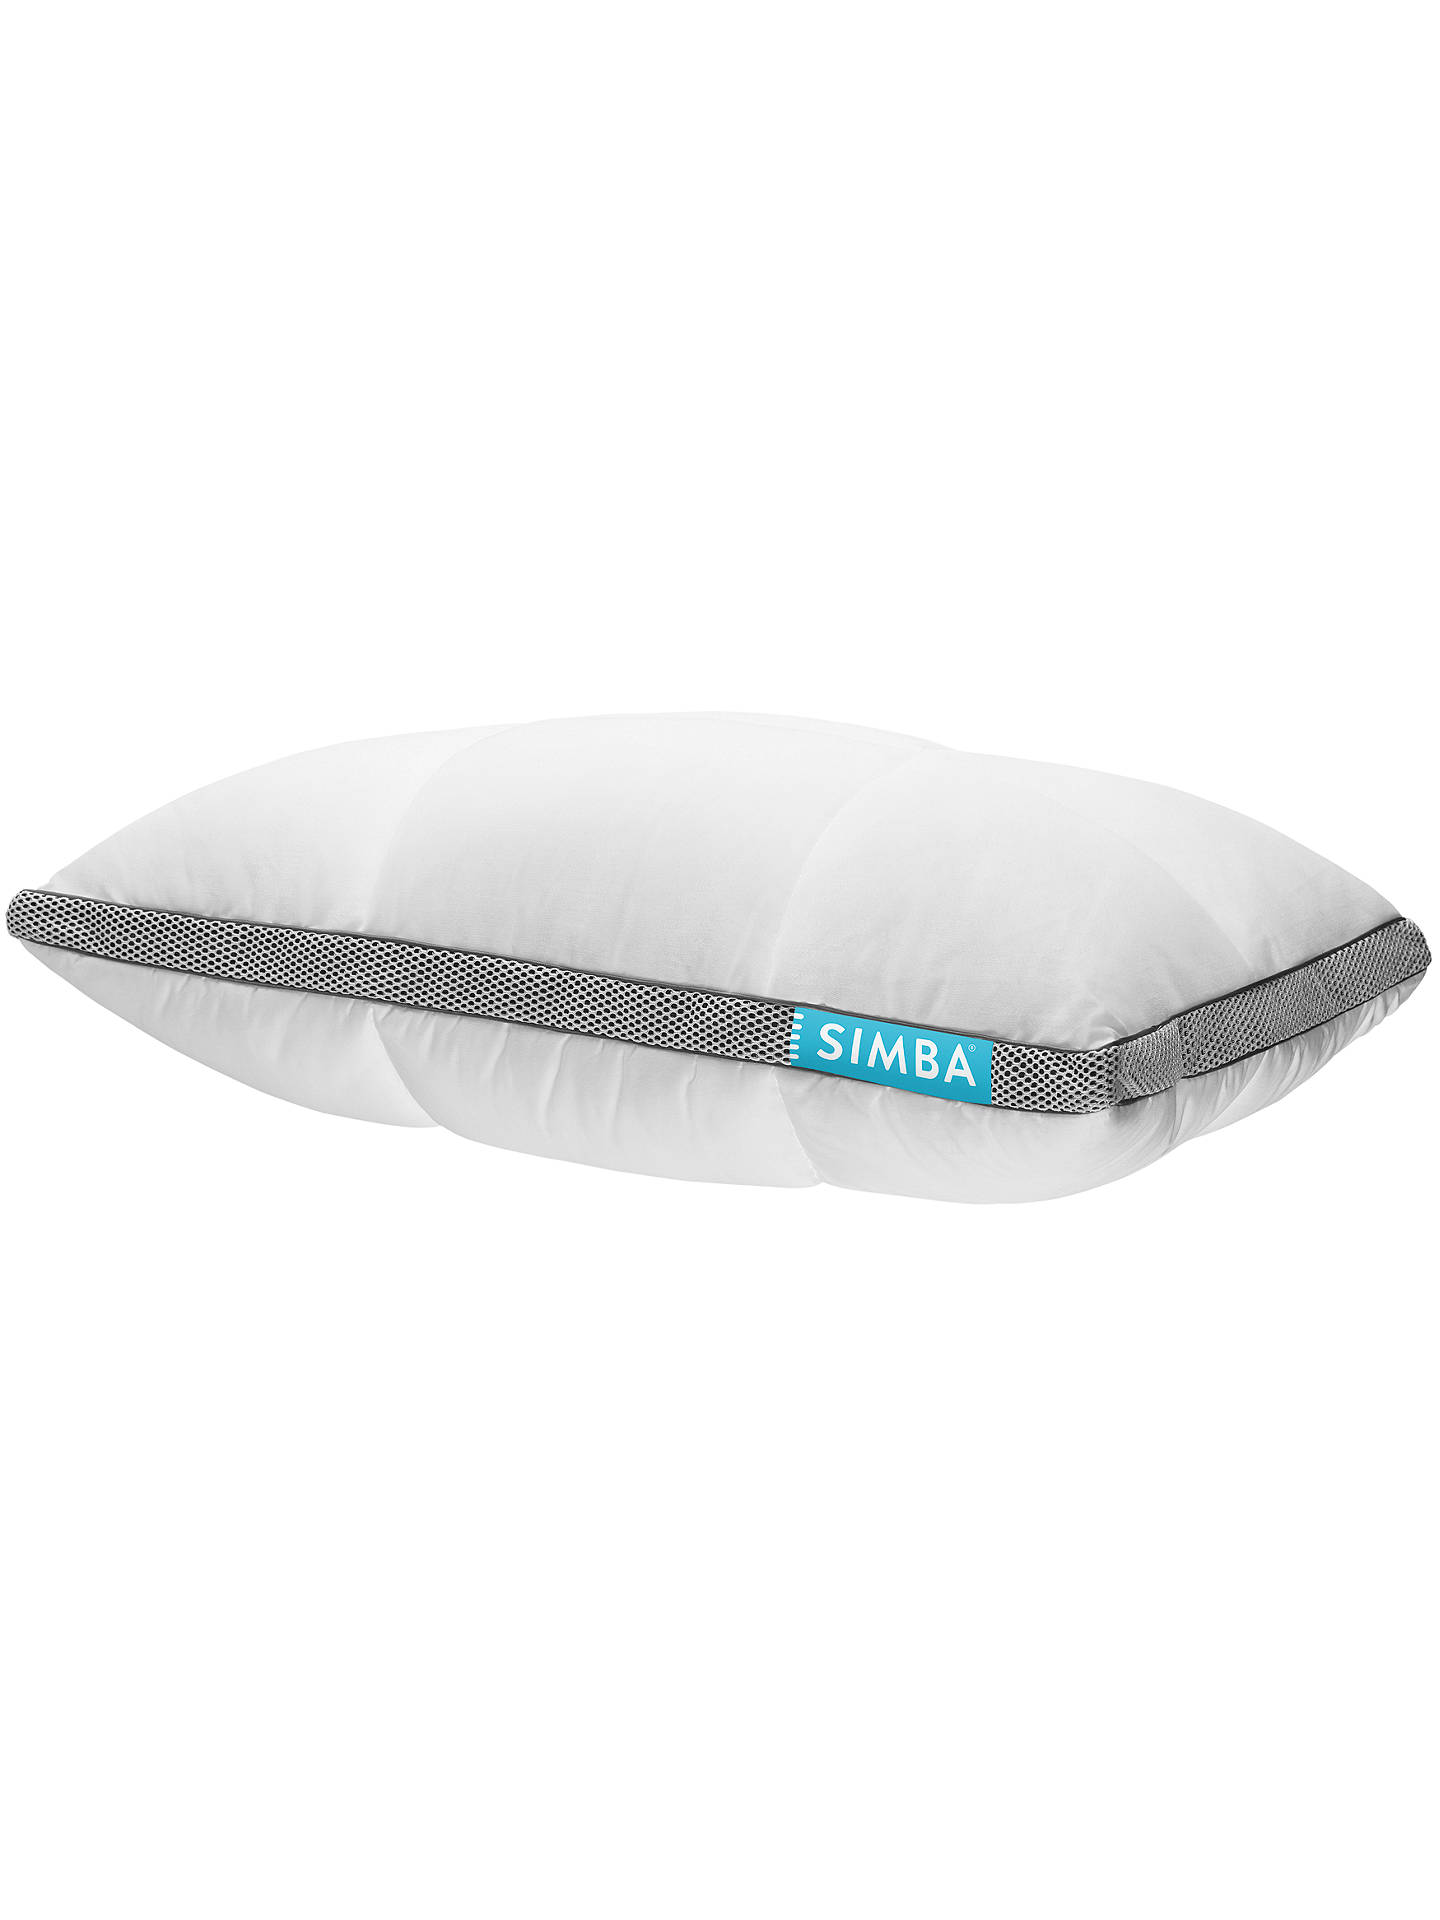 BuySIMBA Hybrid® Standard Pillow, Adjustable Online at johnlewis.com